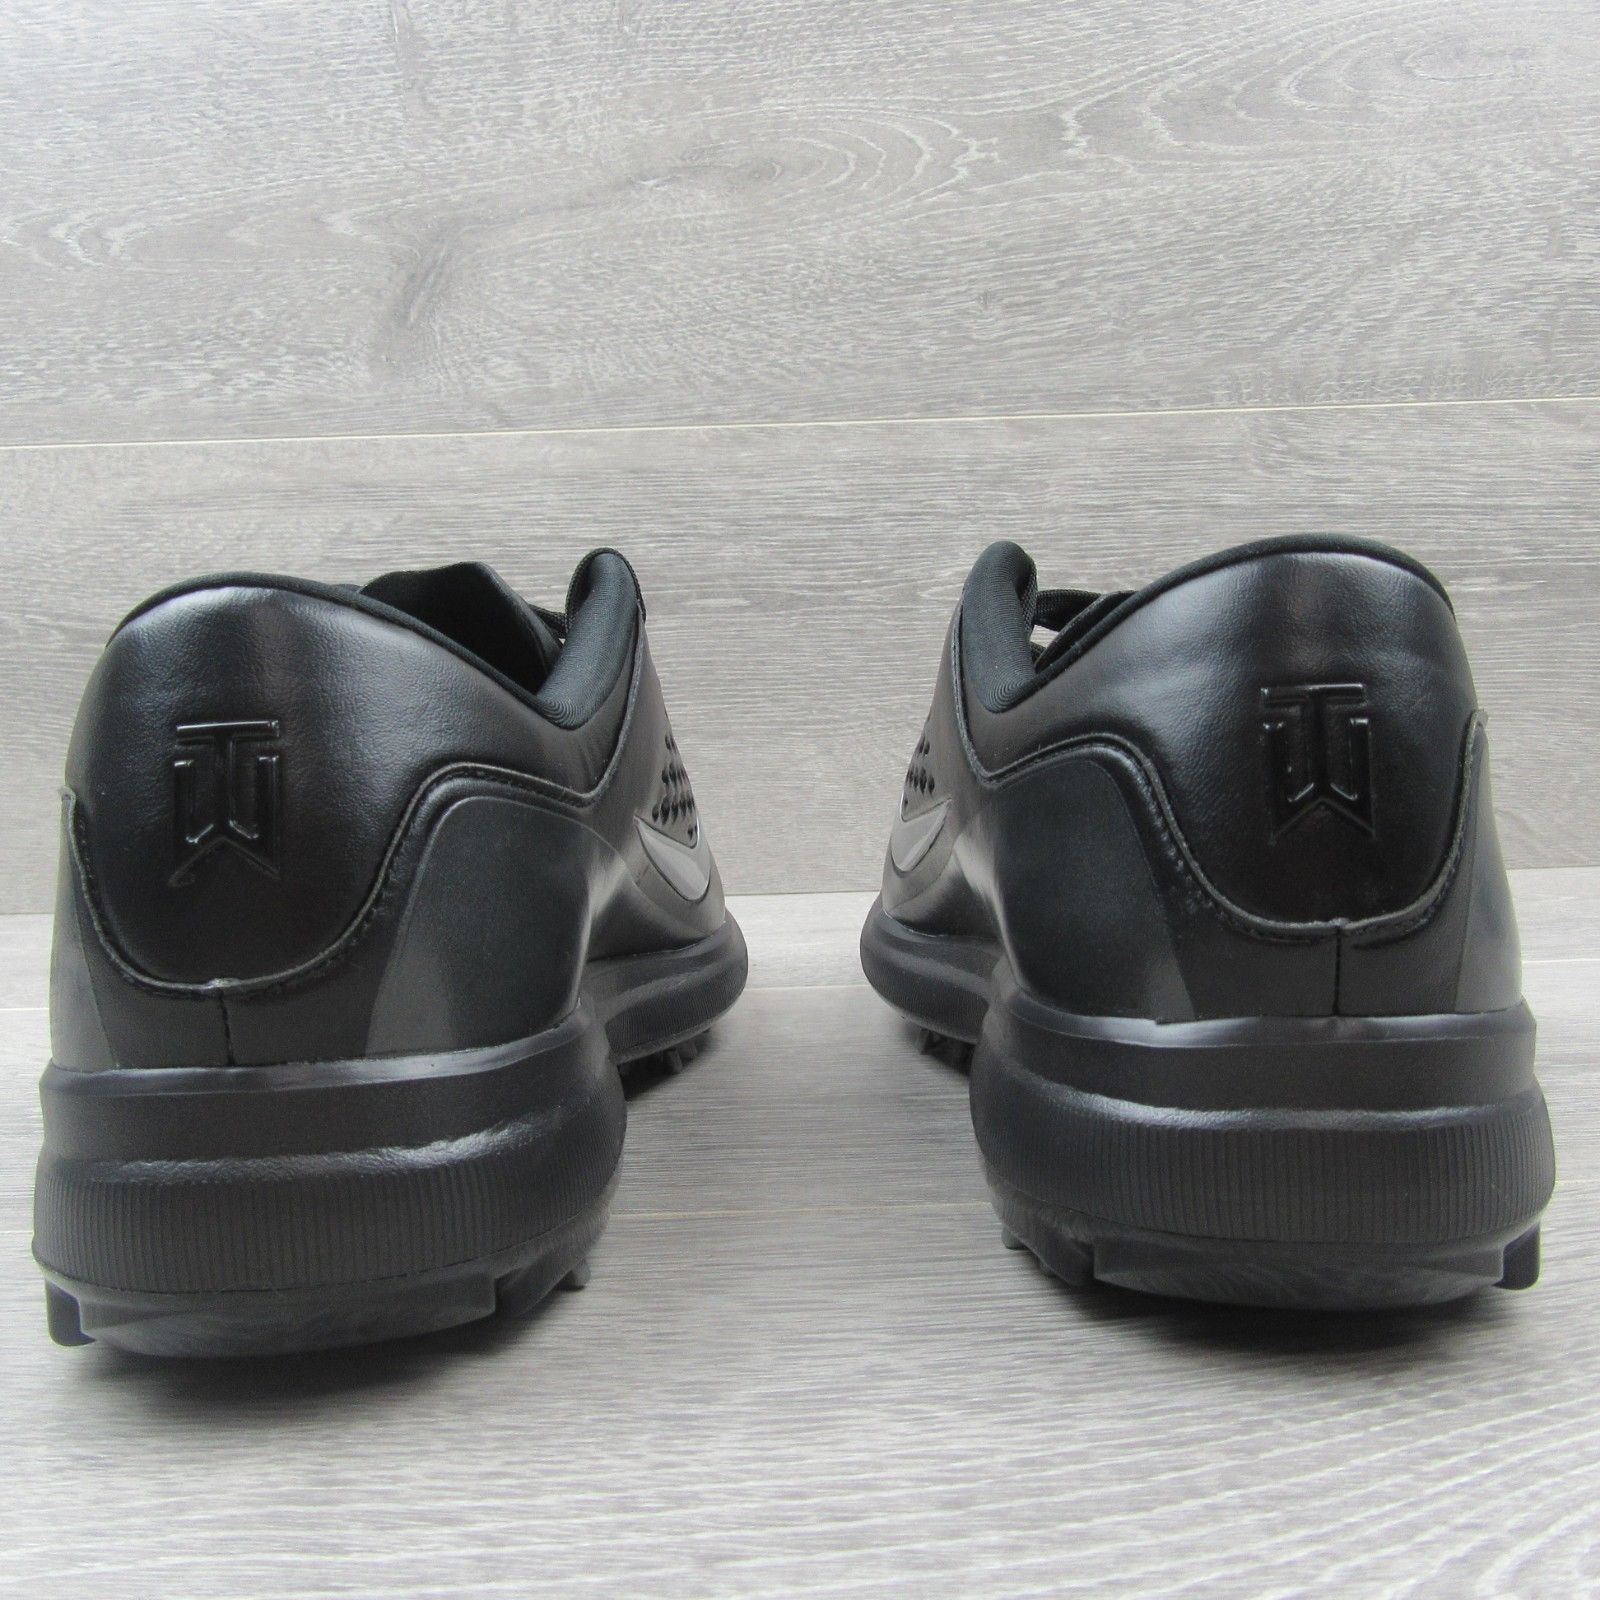 Nike Golf Air Zoom TW71 Tiger Woods Cleats Size 11 Mens Black Silver AA1990  002 8715056e6e108